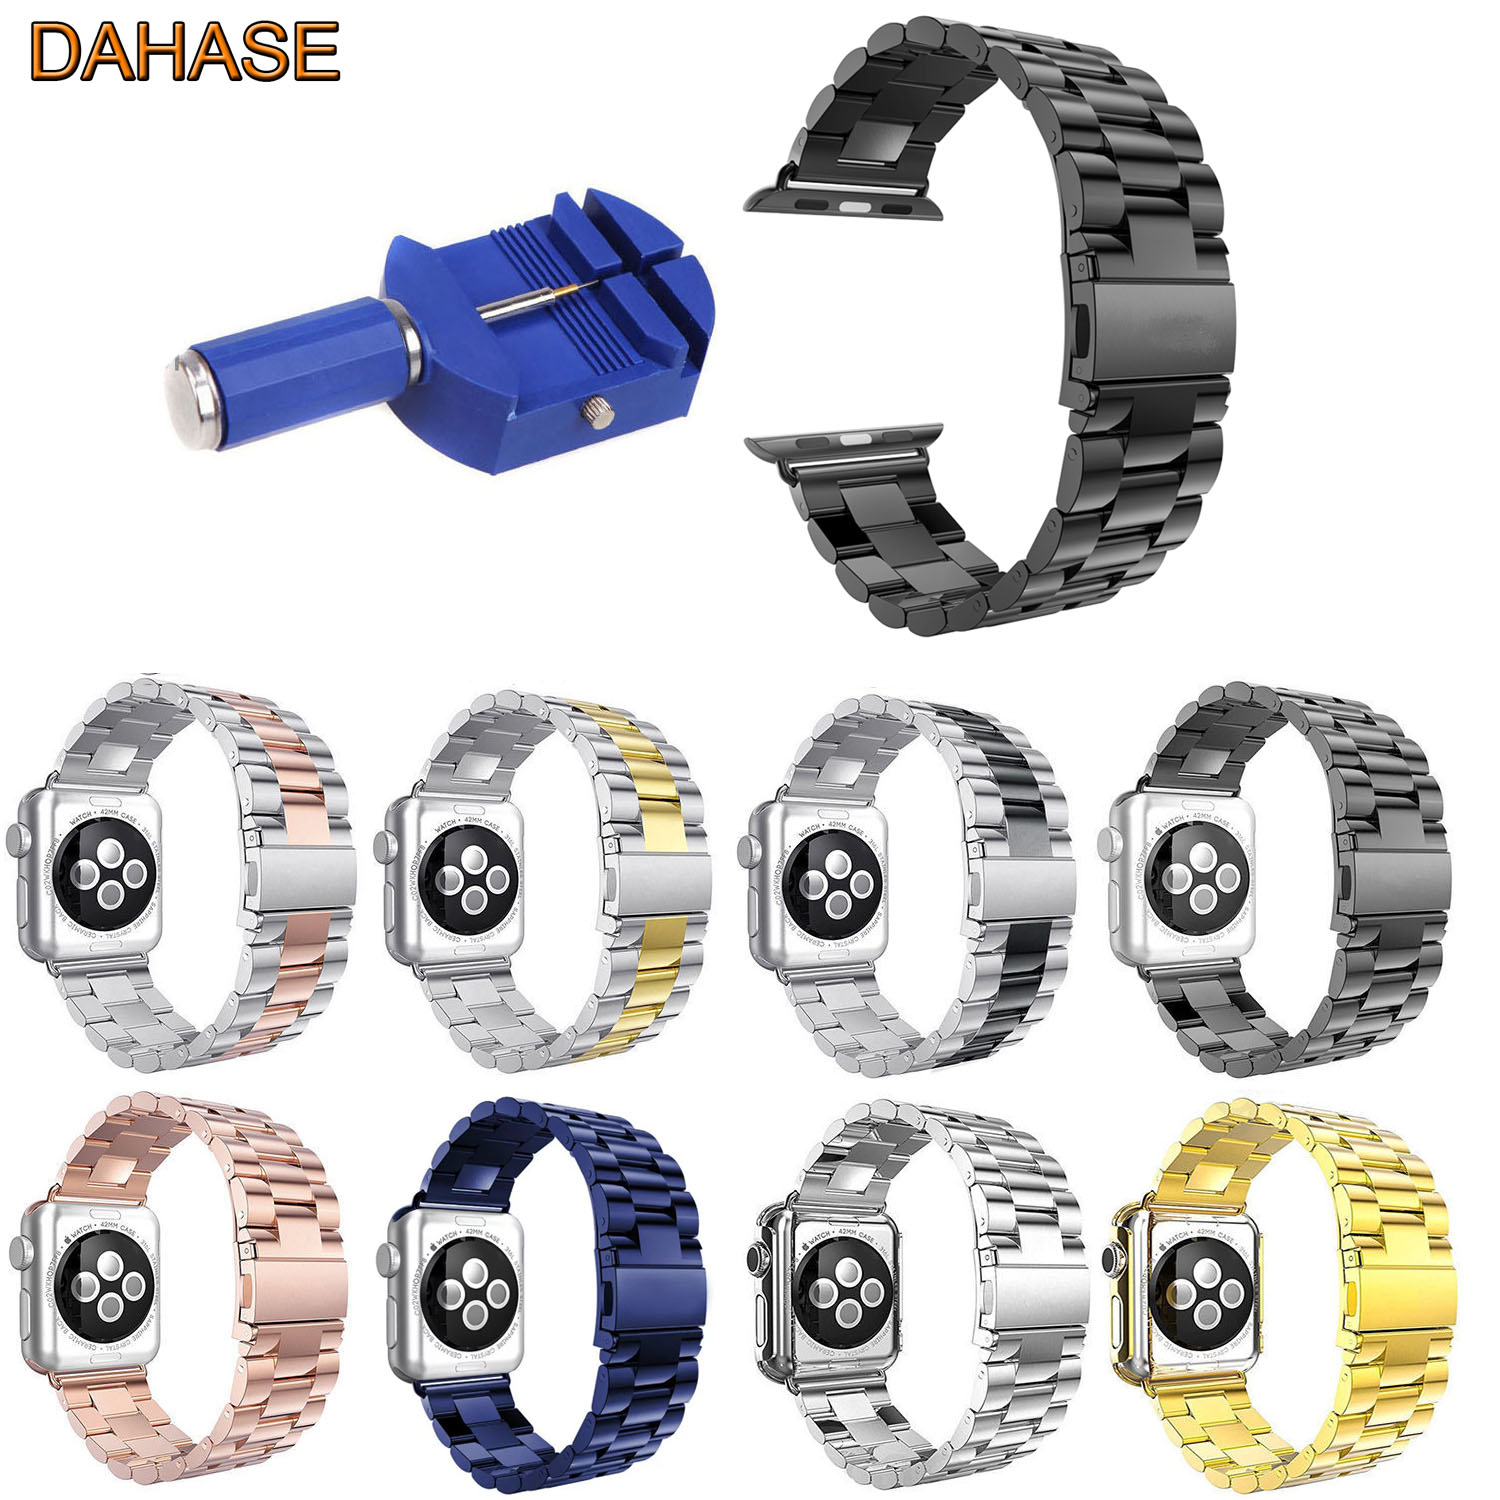 DAHASE Stainless Steel Replacement Wristband for font b Apple b font font b Watch b font